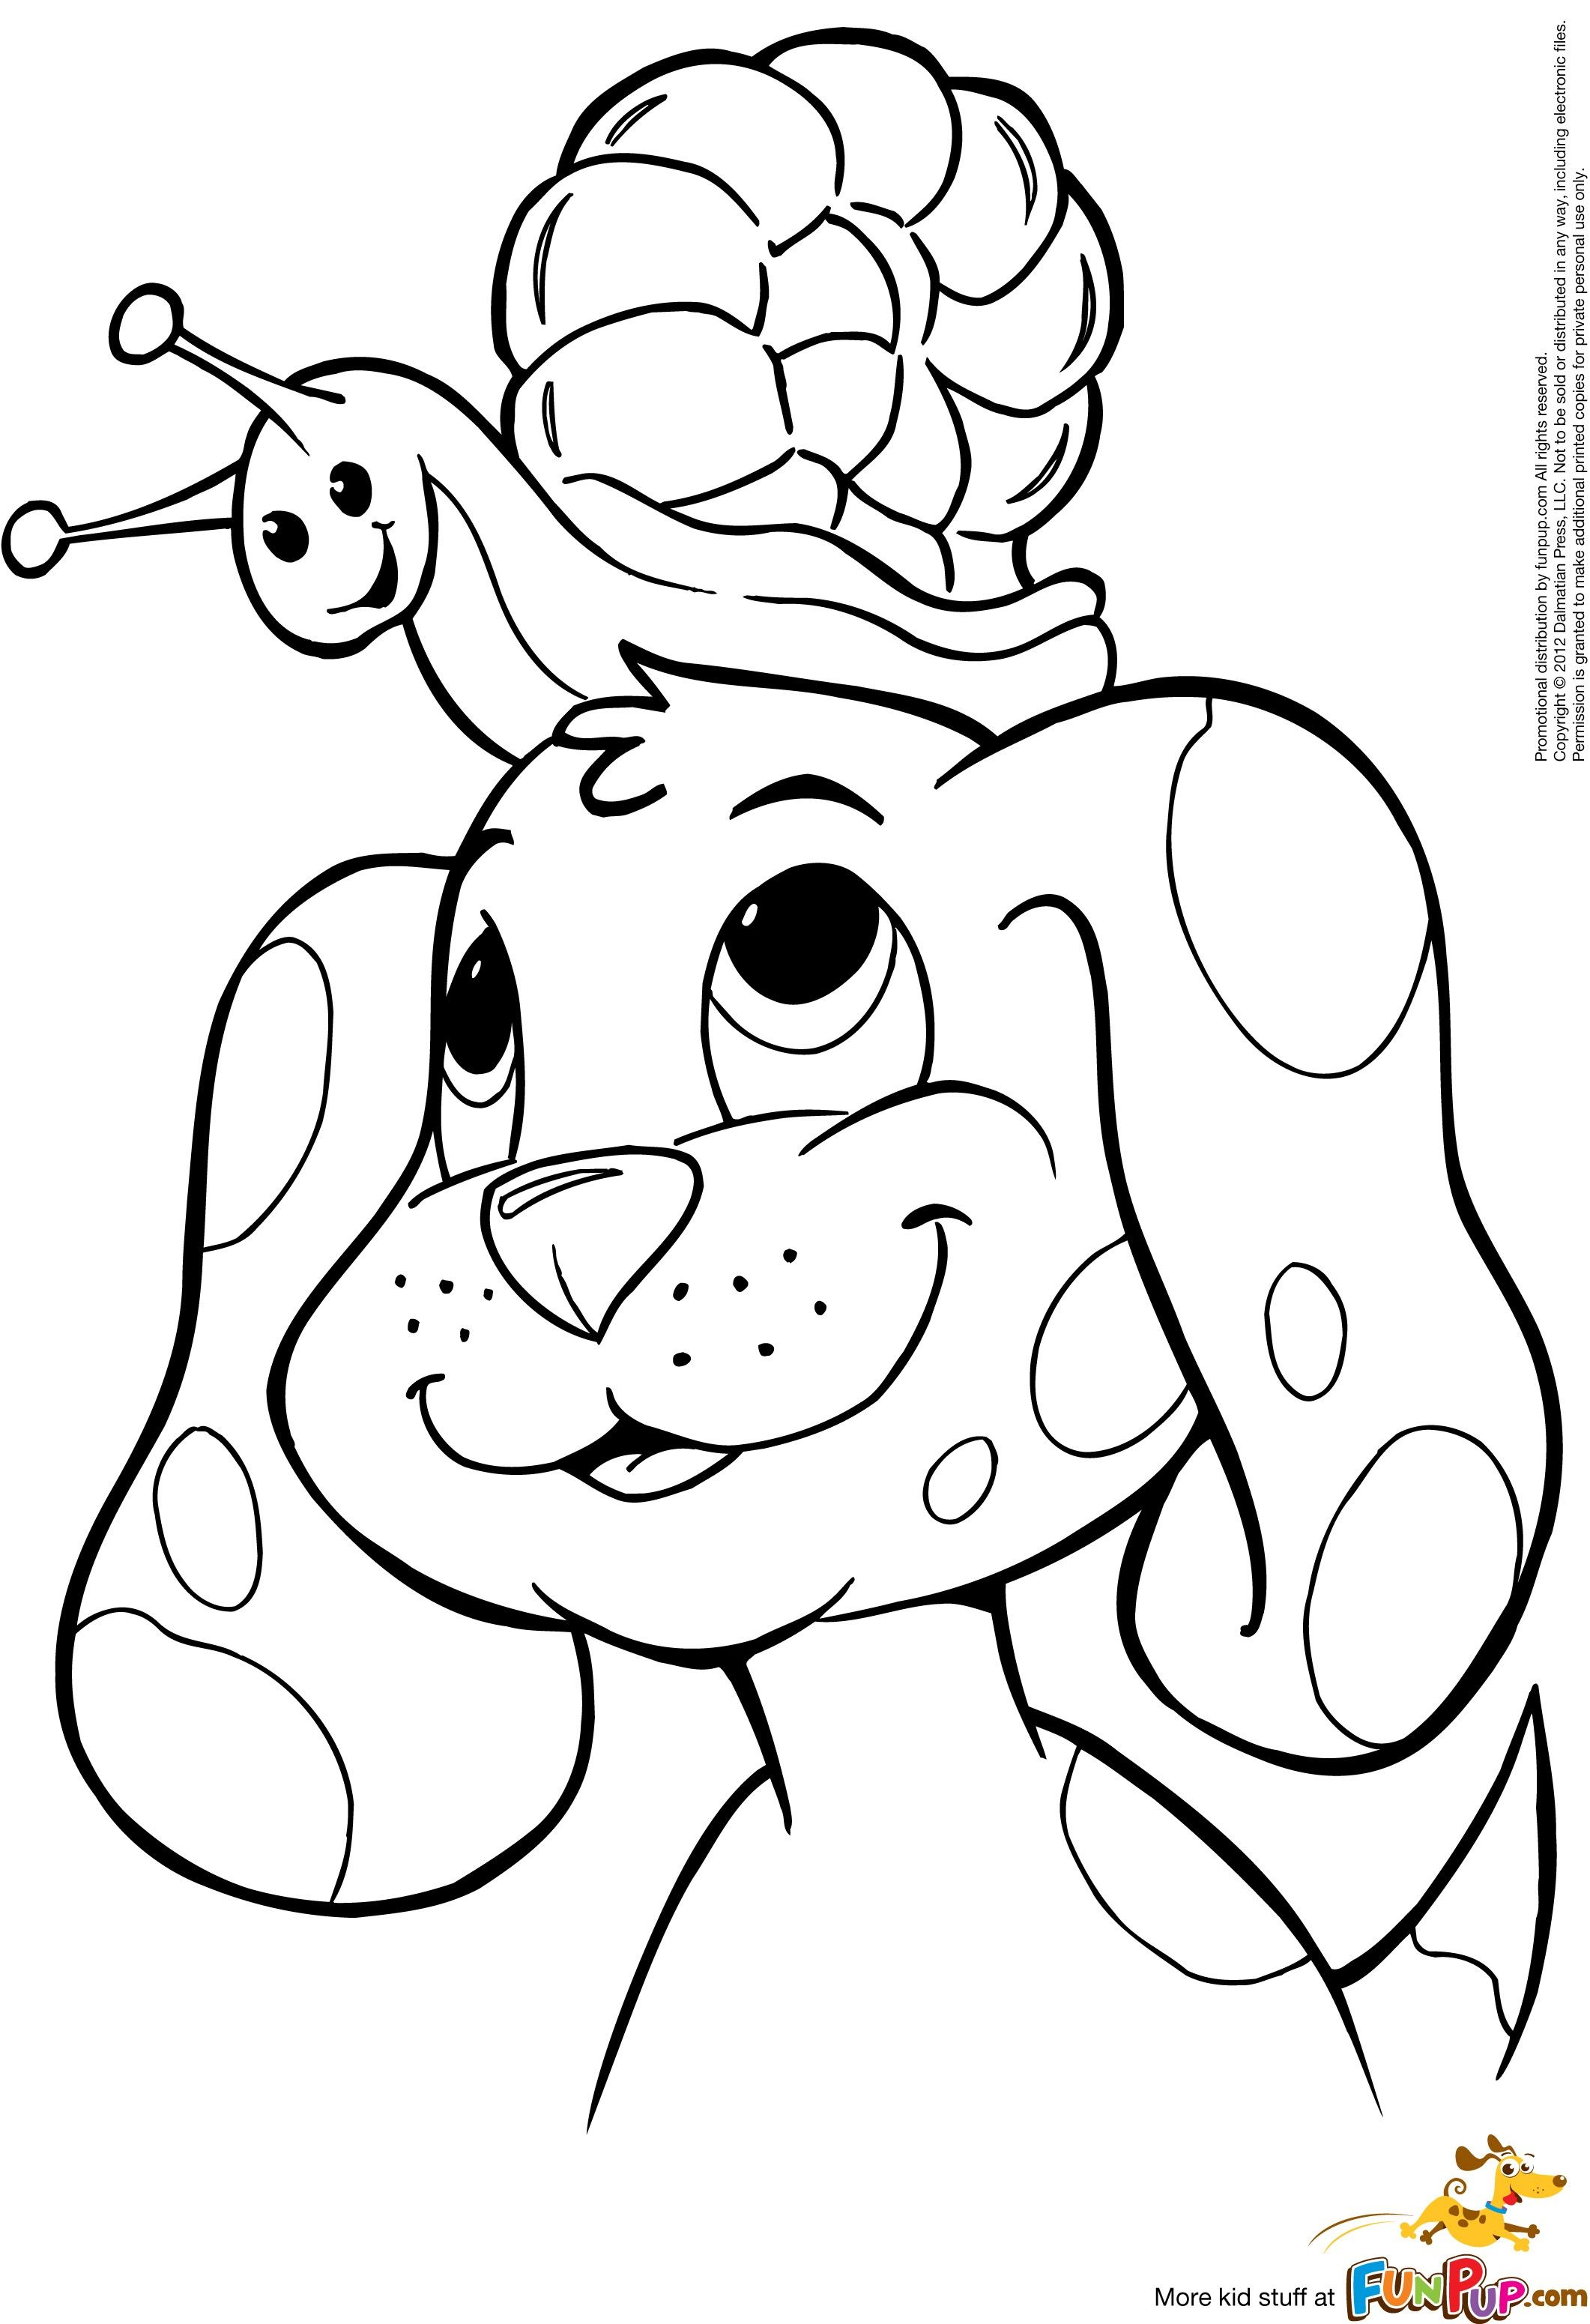 Printable Puppy Coloring Pages Animal Desenhos Para Colorir